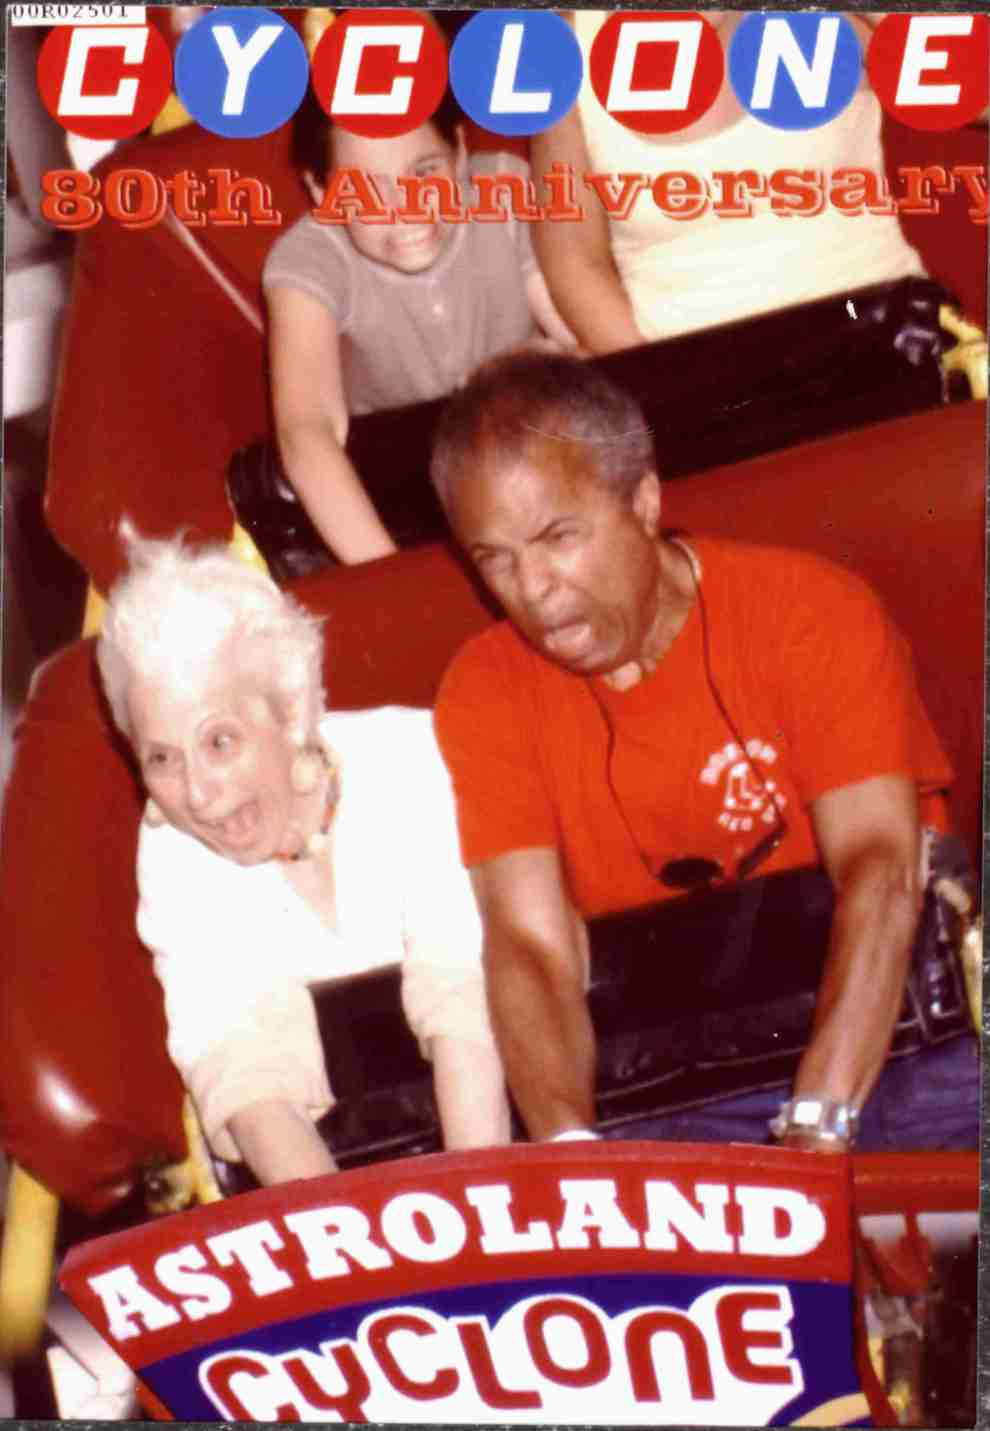 On the Cyclone with Garry - July 2007